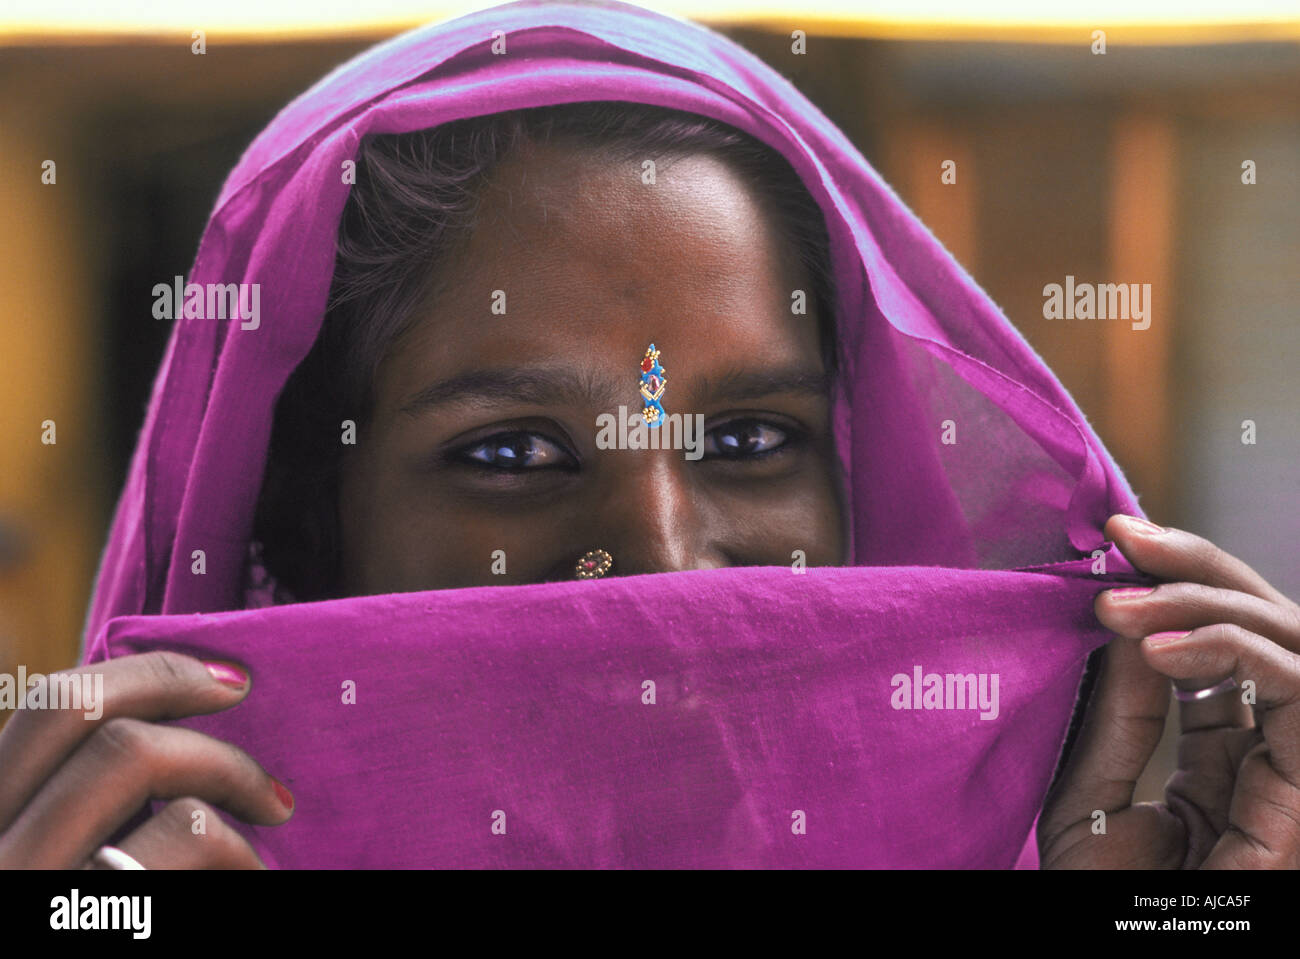 Friendly Hindu woman from Uttar Pradesh with magenta headcloth veiling her smile India - Stock Image